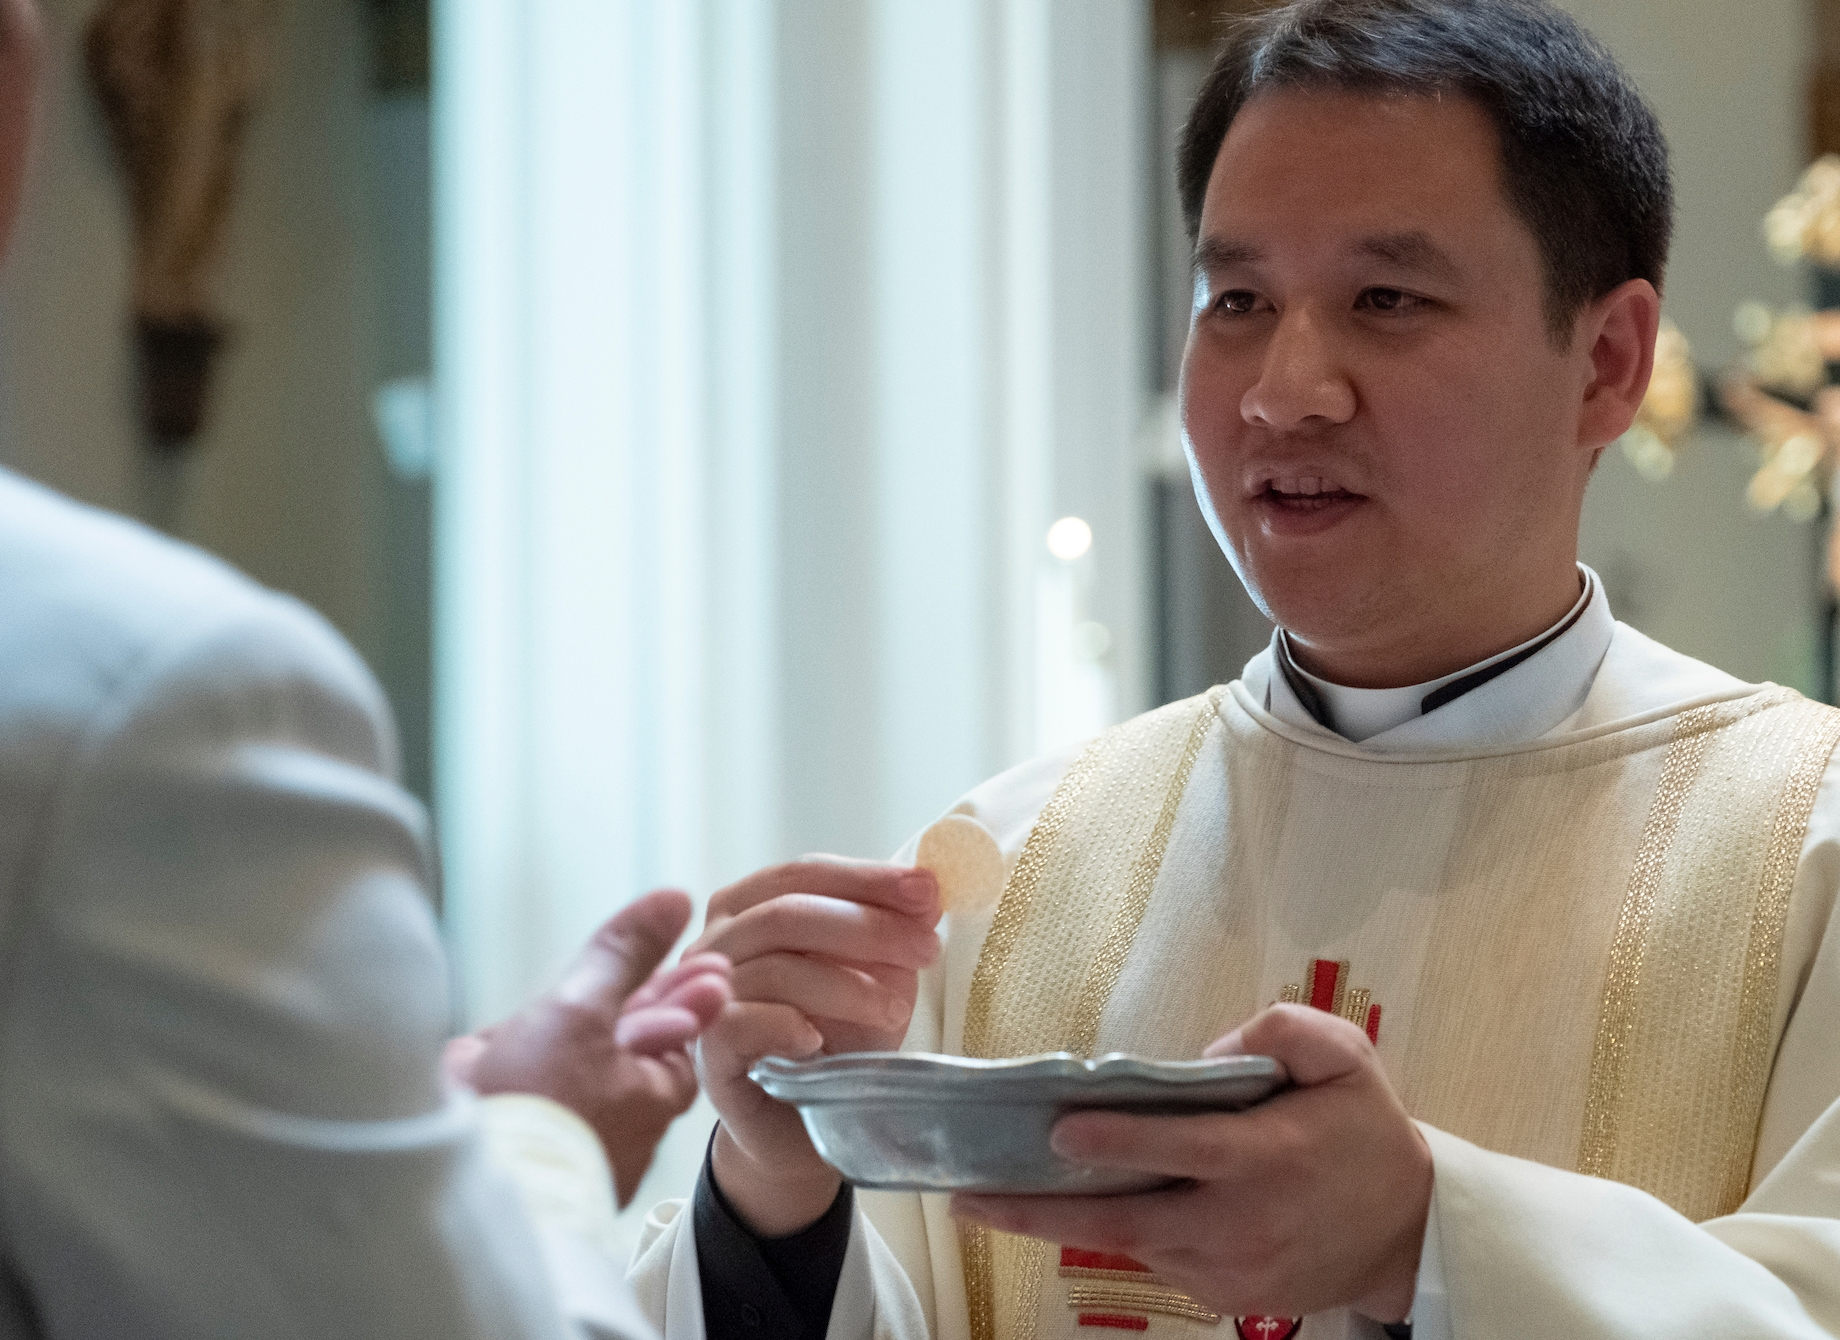 2018 Priesthood Ordination Mass for Anh Tran, Justin Ryan and Louis Cunningham at St. James Cathedral on Saturday June 9, 2018 in Seattle. (PHOTO by Stephen Brashear) Anh Tran distributing communion, eucharist